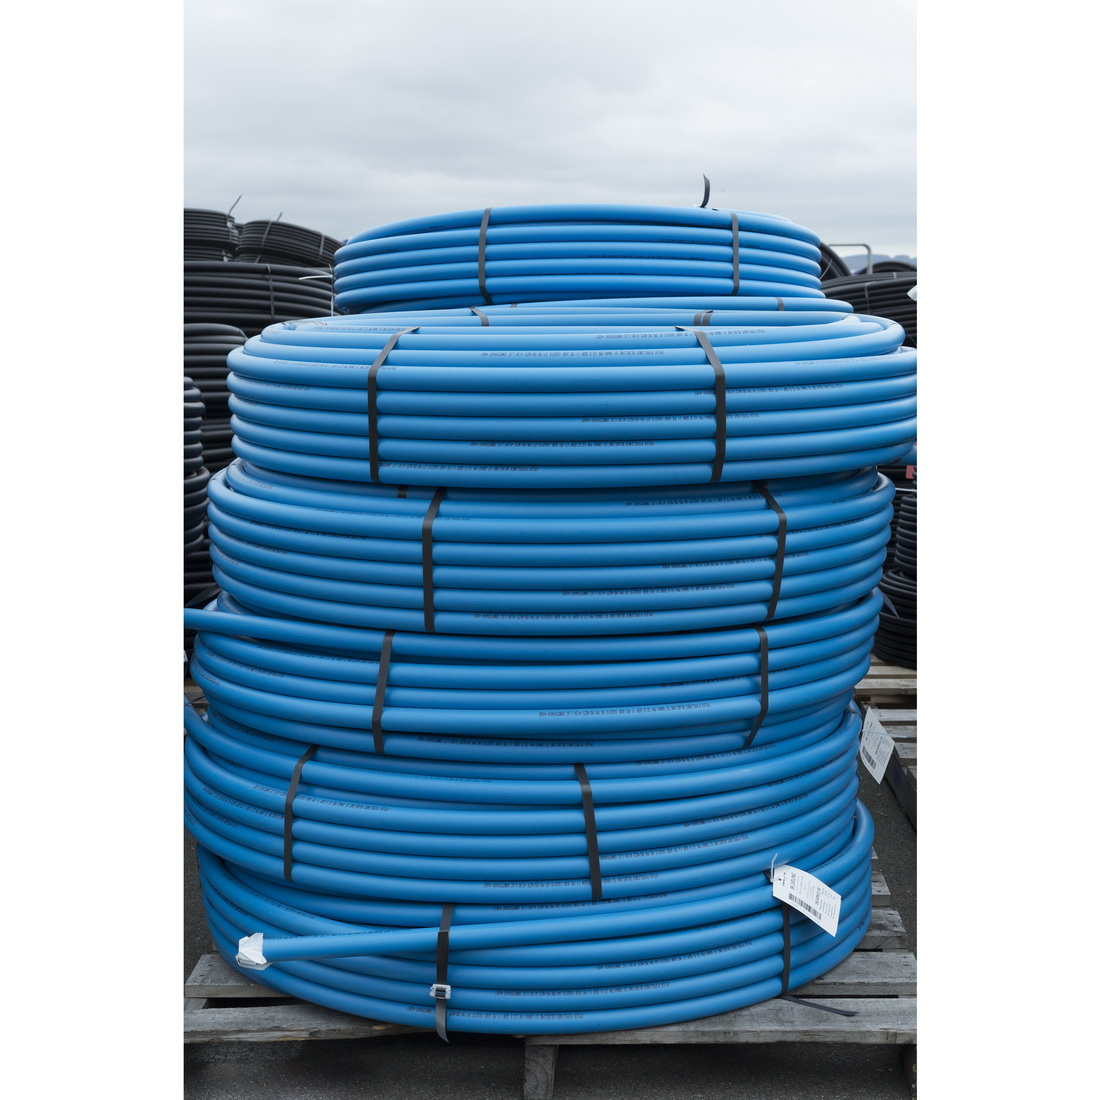 PolBlueline 2500 Series Pressure Pipe 32mm x 50m 12.5 bar Compression PE80 MDPE Light Blue